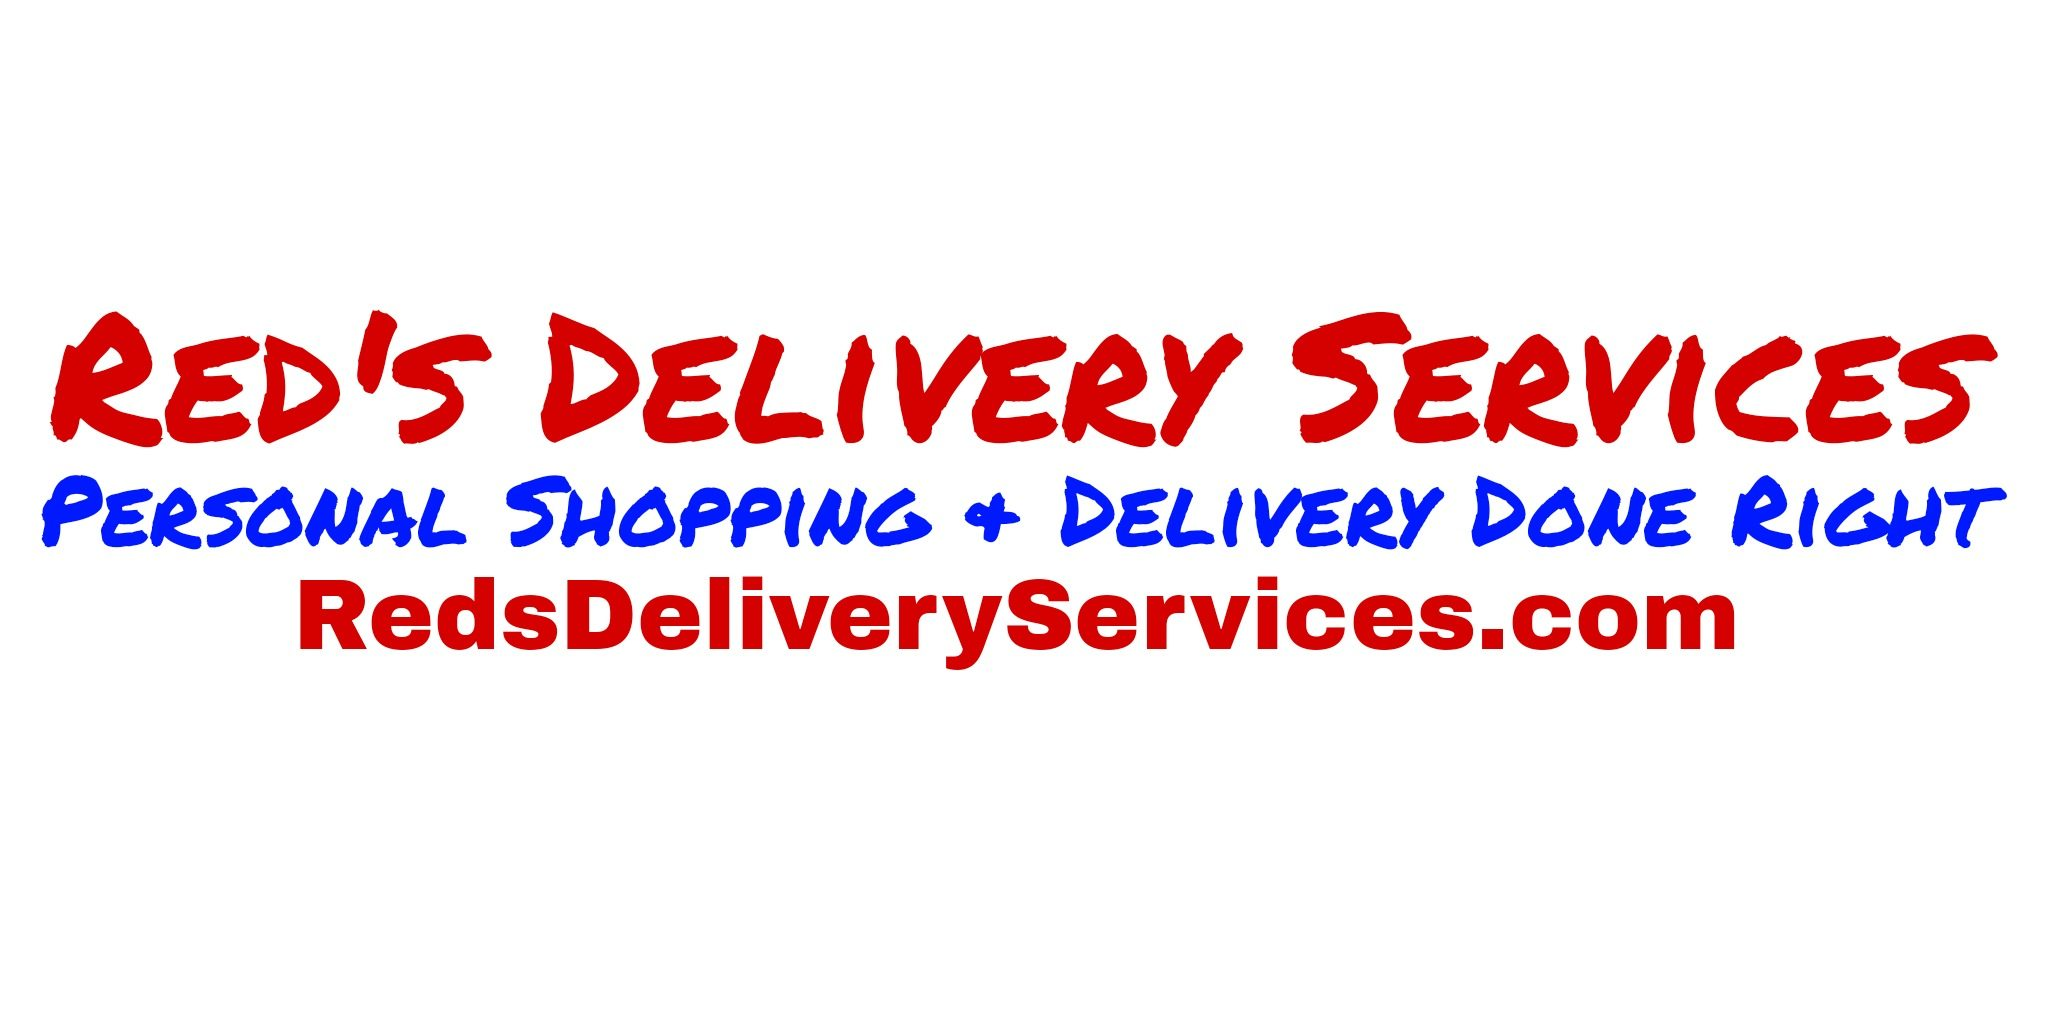 Red's Delivery Services